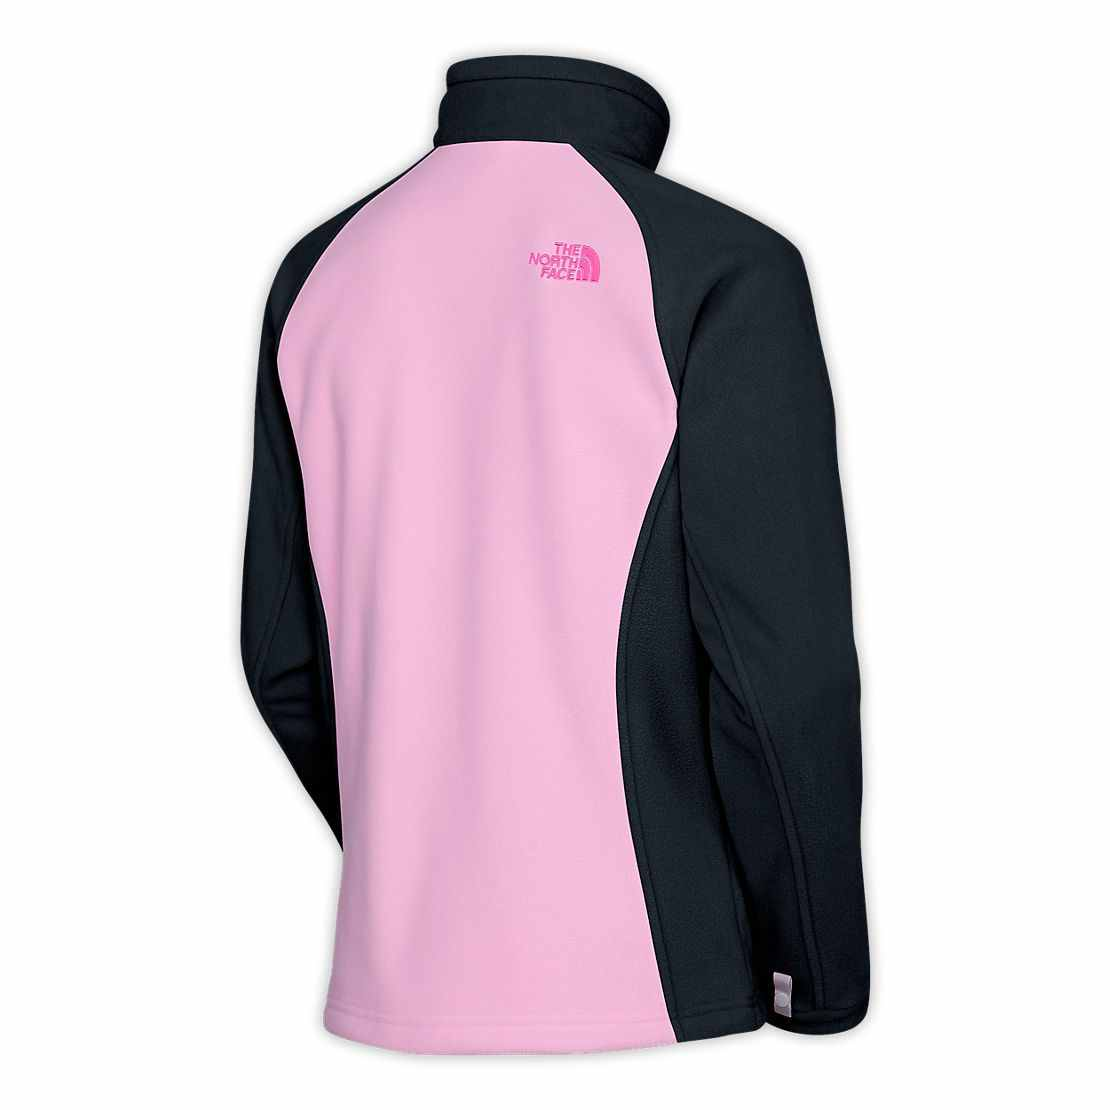 North-Face-PINK-RIBBON-KHUMBU-JACKET-Pink-Black-WOMENS How Women Choose Fleece Jackets